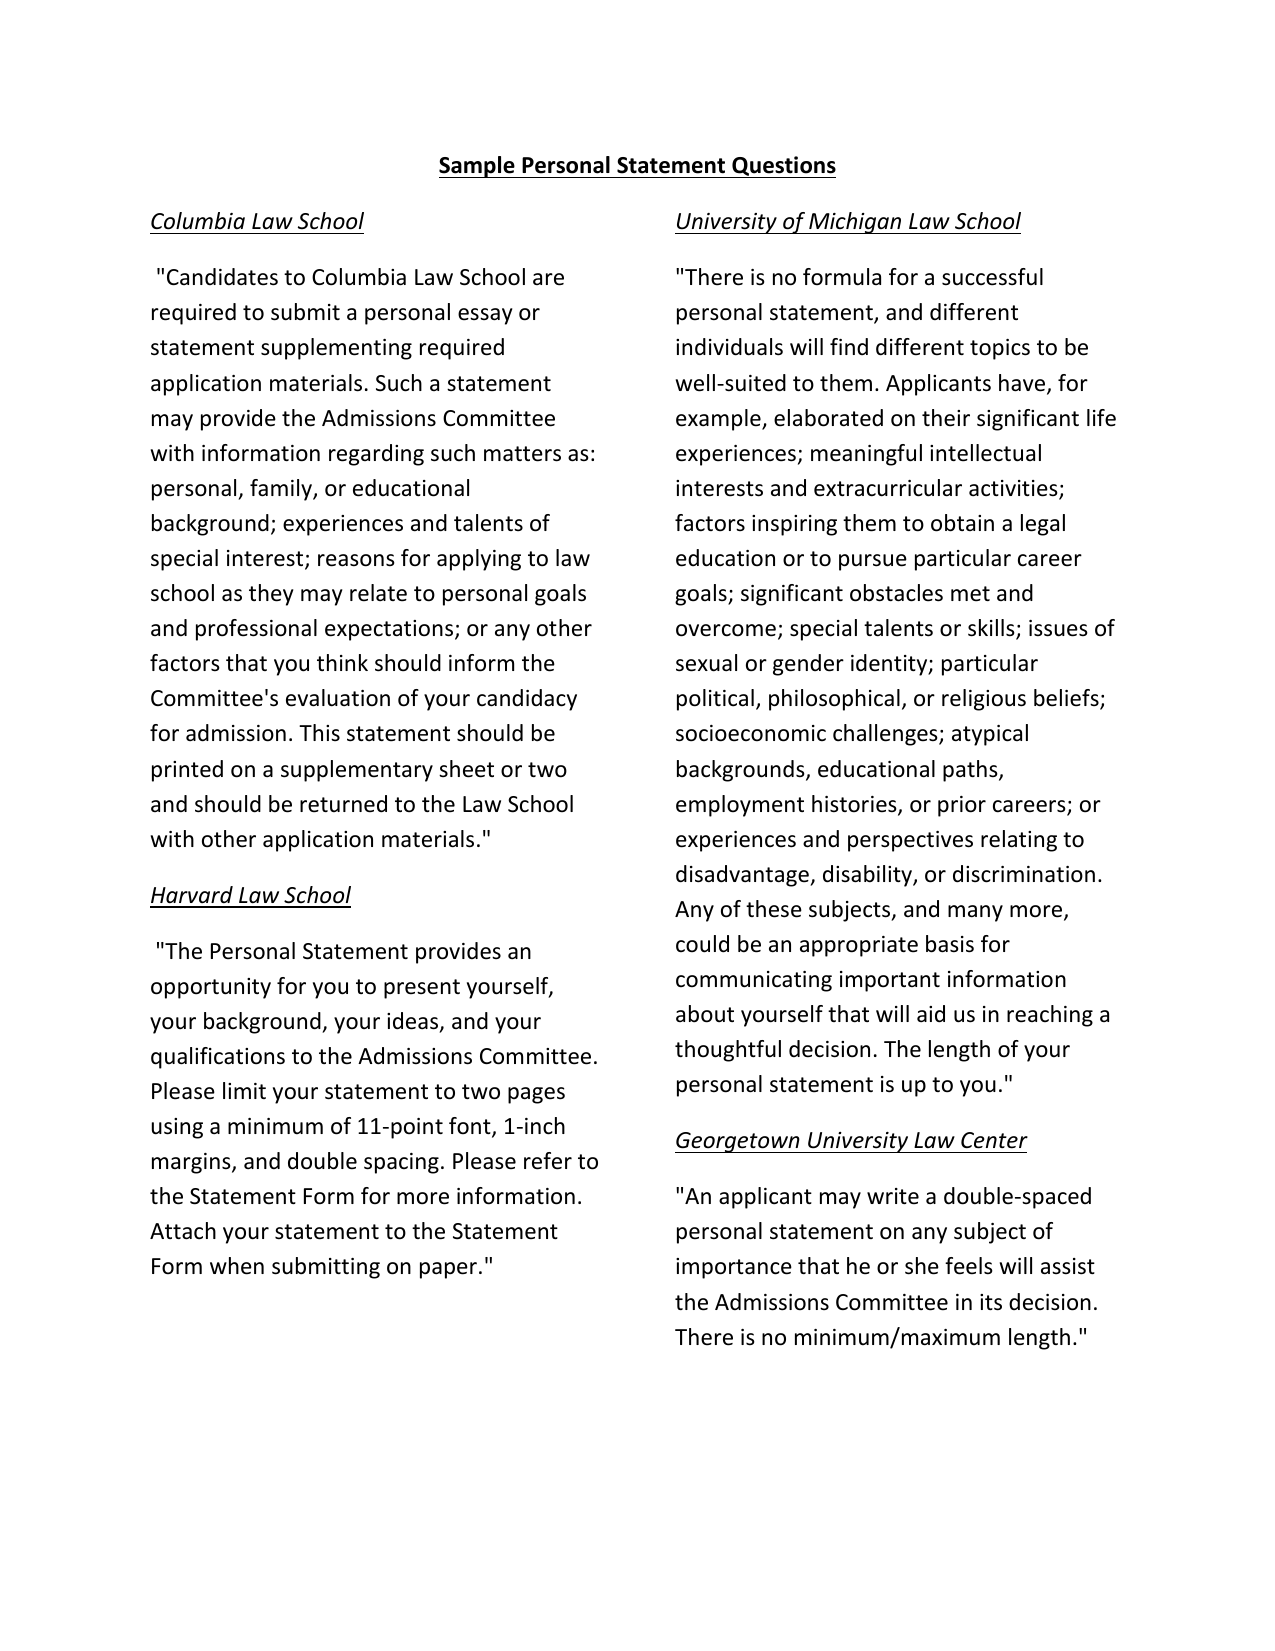 Law personal statement samples